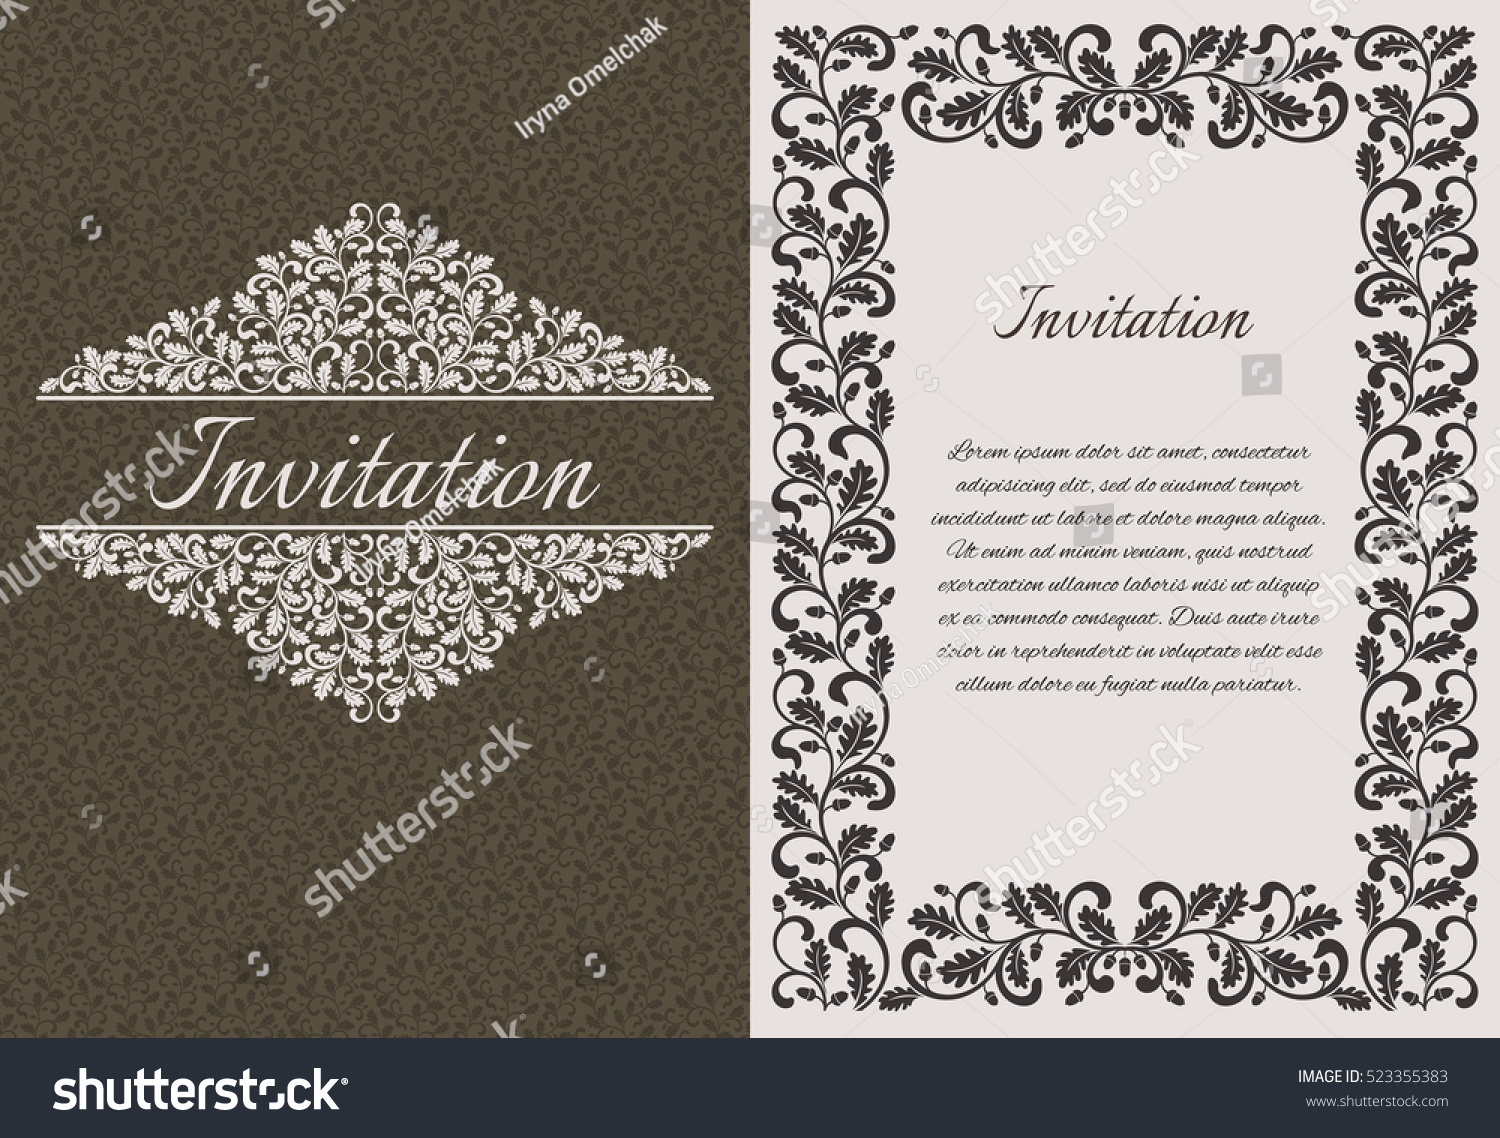 Vintage Wedding Invitation Template Design Decorated Stock Vector ...